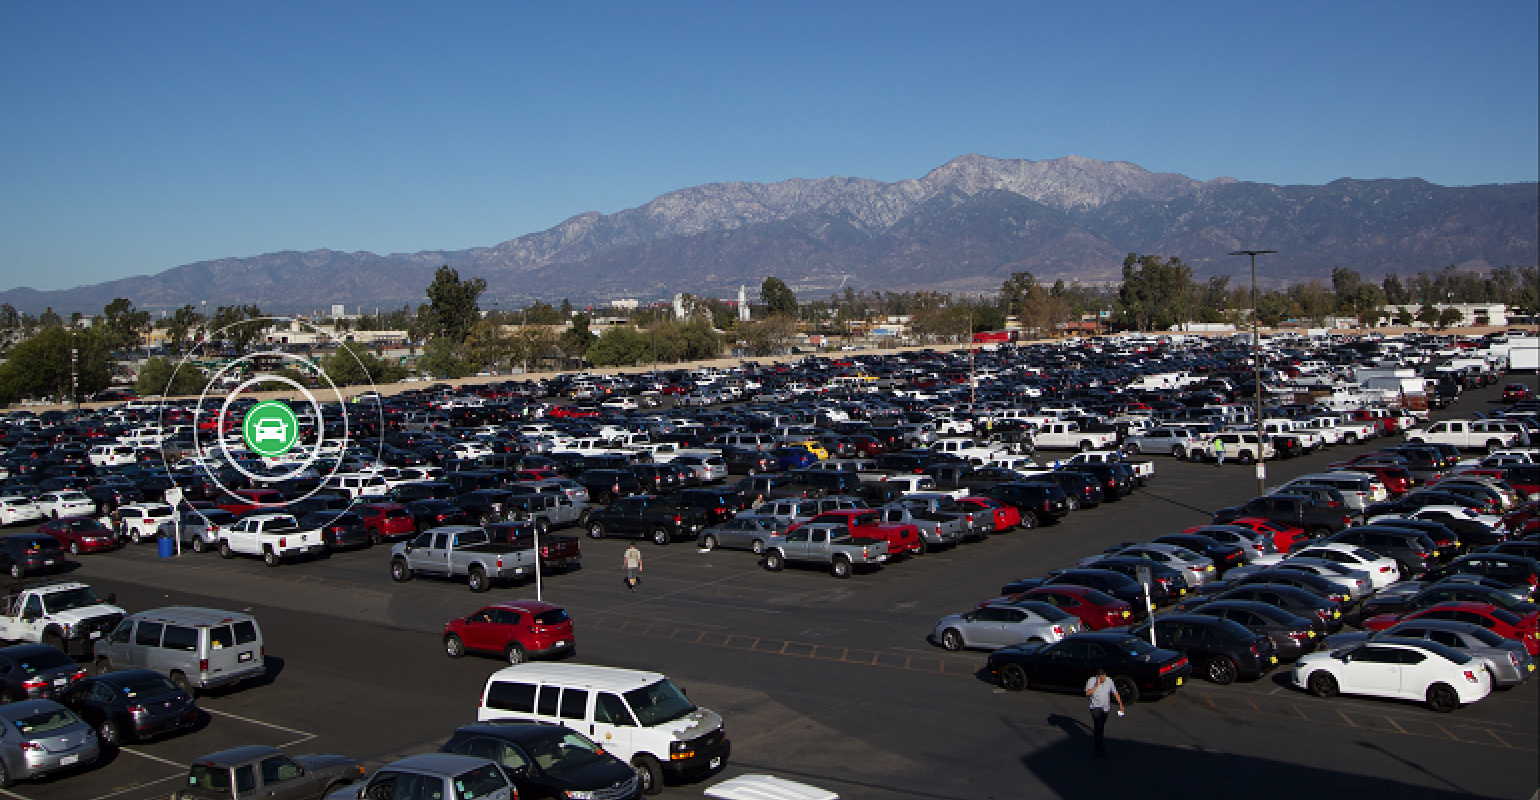 Manheim Public Auto Auction >> Manheim Uses New Locator System To Track Millions Of